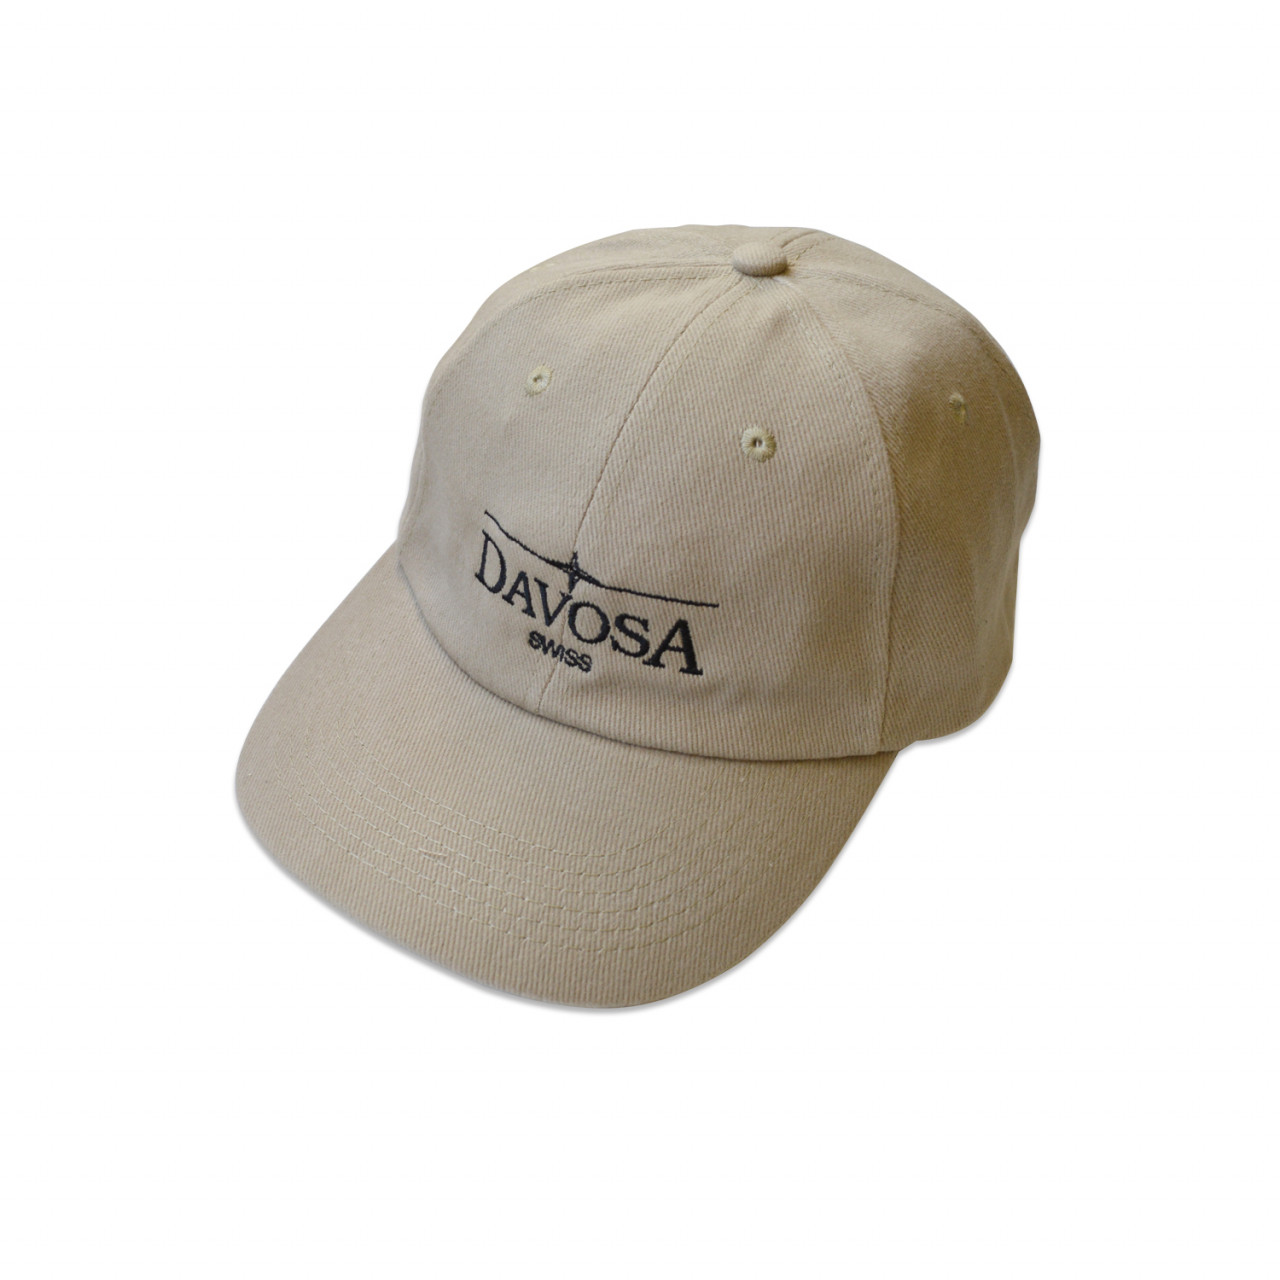 Base cap beige